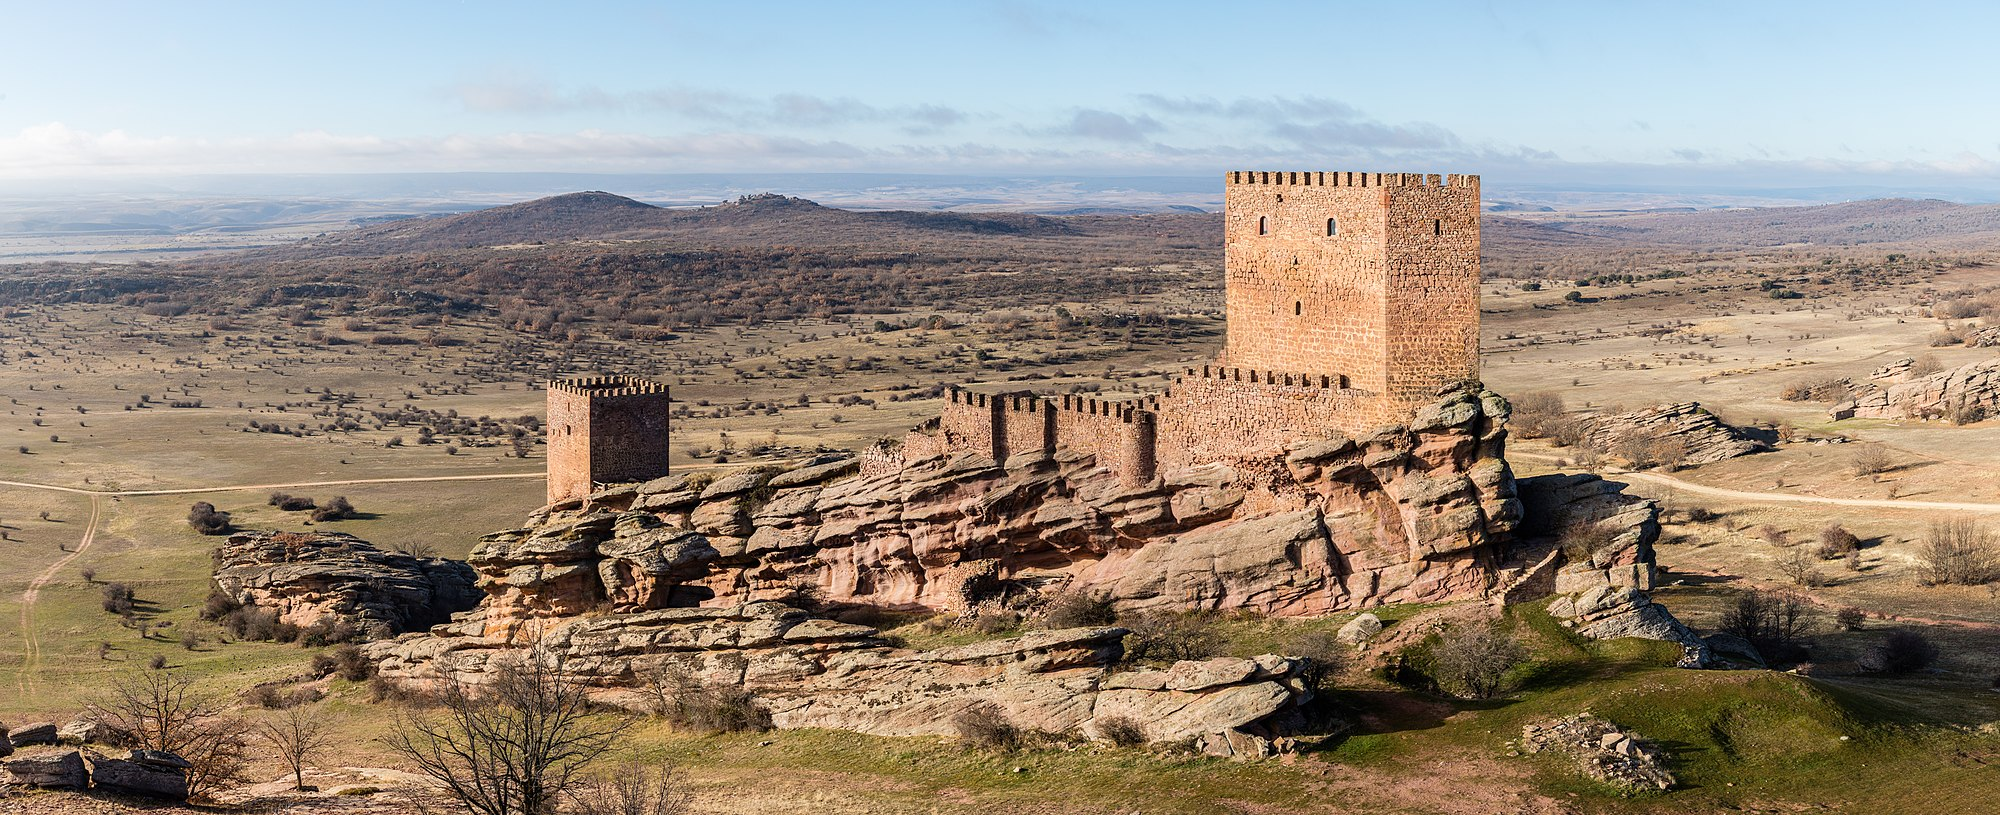 View of the Castle of Zafra, Campillo de Dueñas, province of Guadalajara, Spain.